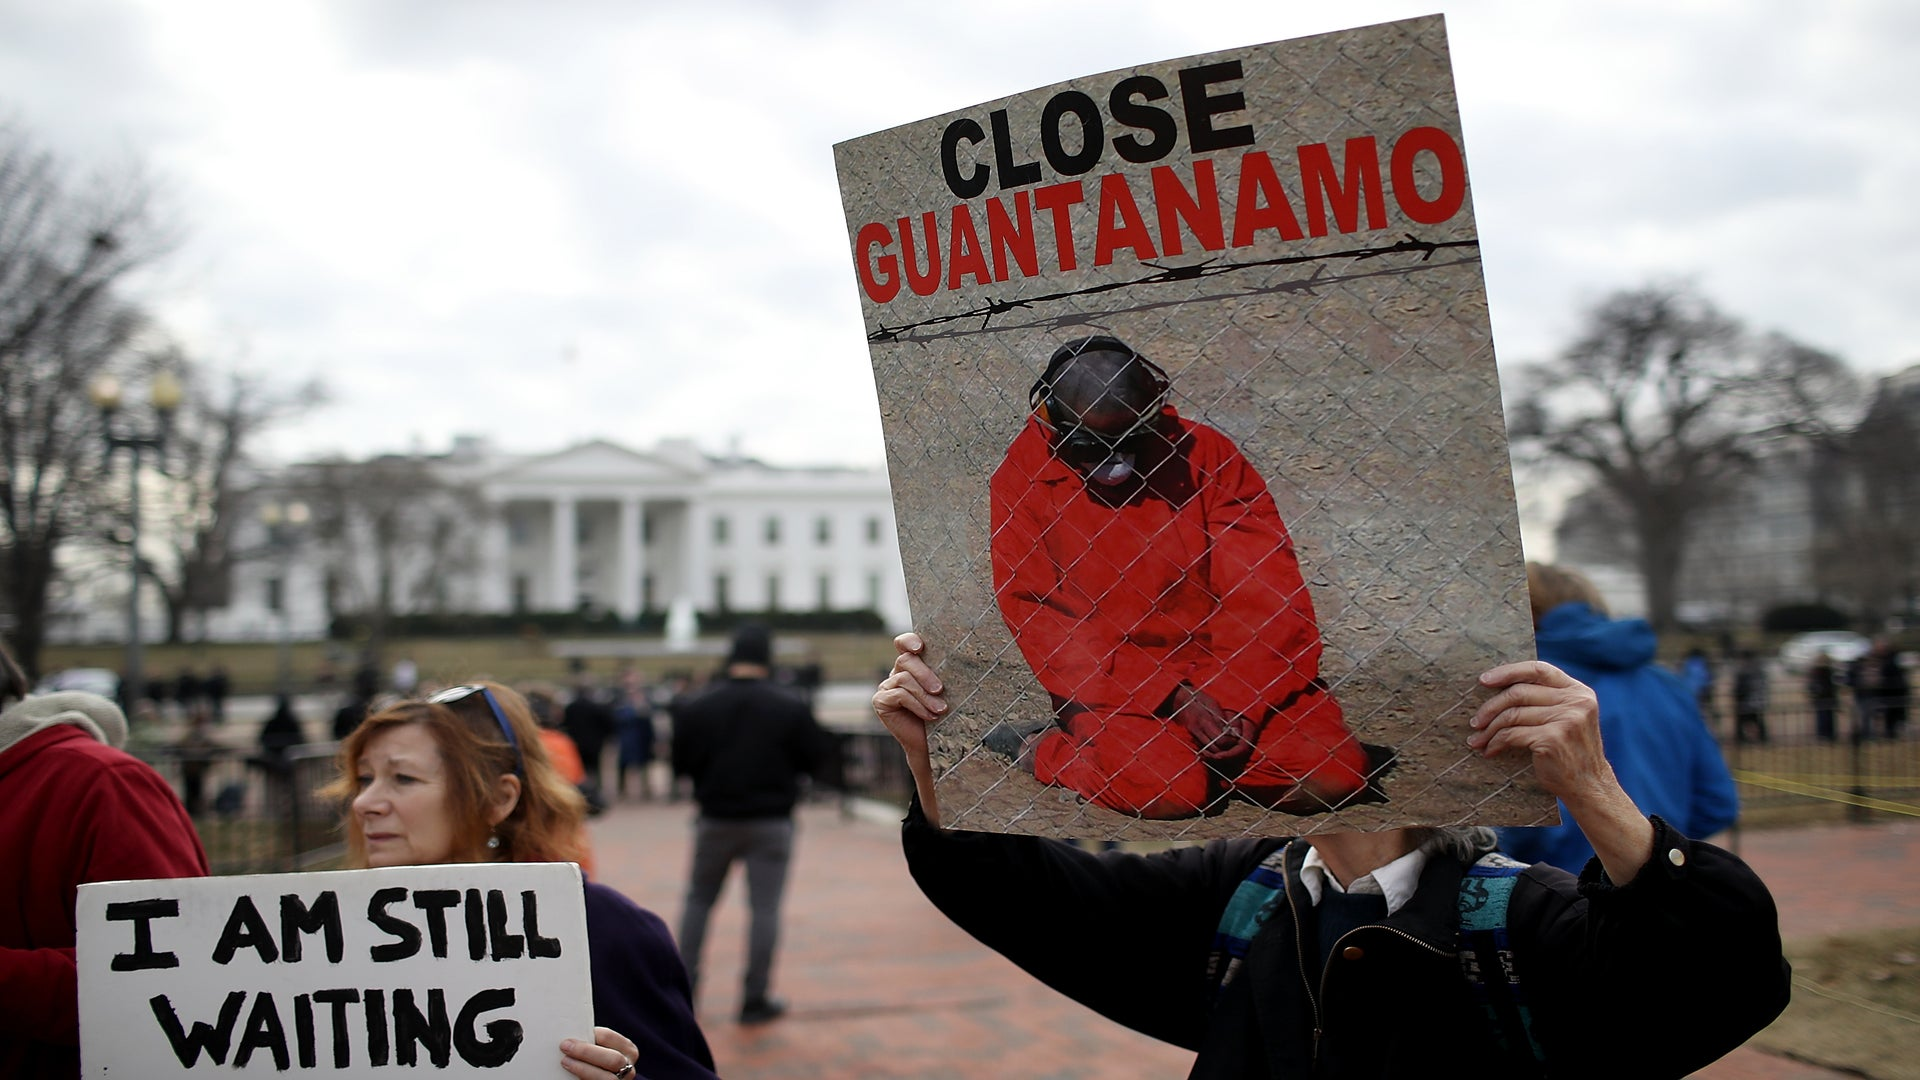 Right Before His First SOTUTrump Signed An Order To Keep Guantanamo Bay Open